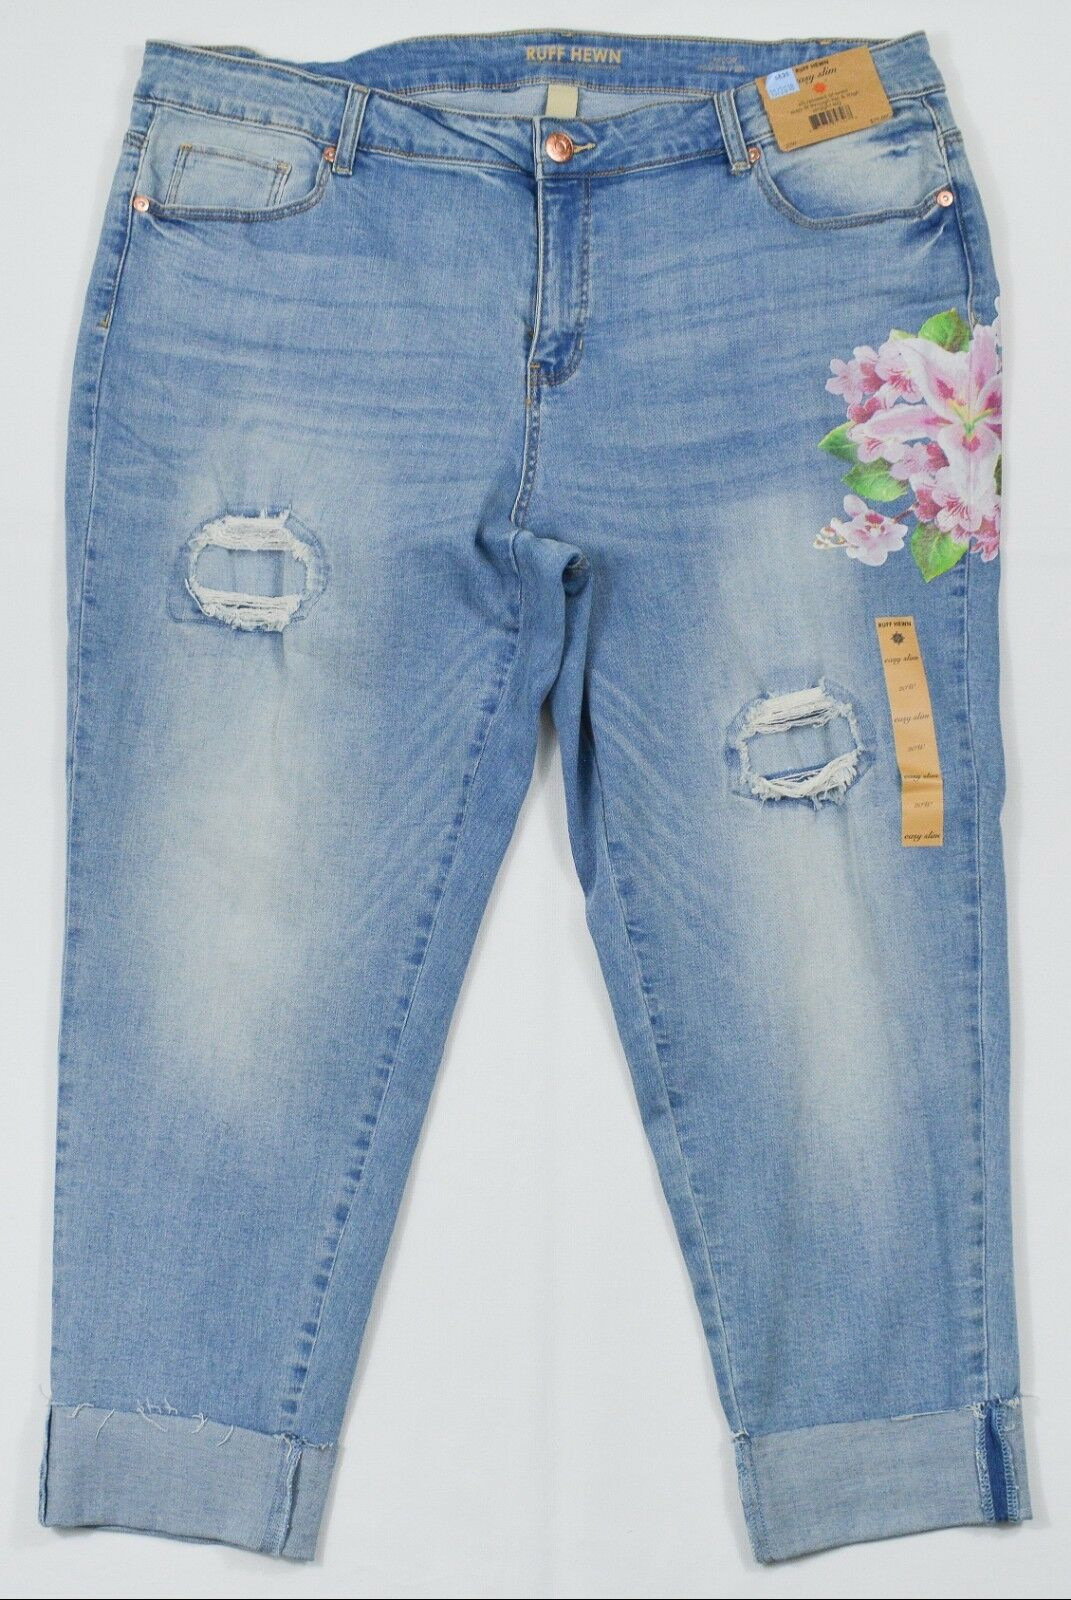 863327c0fff Ruff Hewn 5 Pocket Embroidered Blue Jeans Easy Slim Size 24w for ...